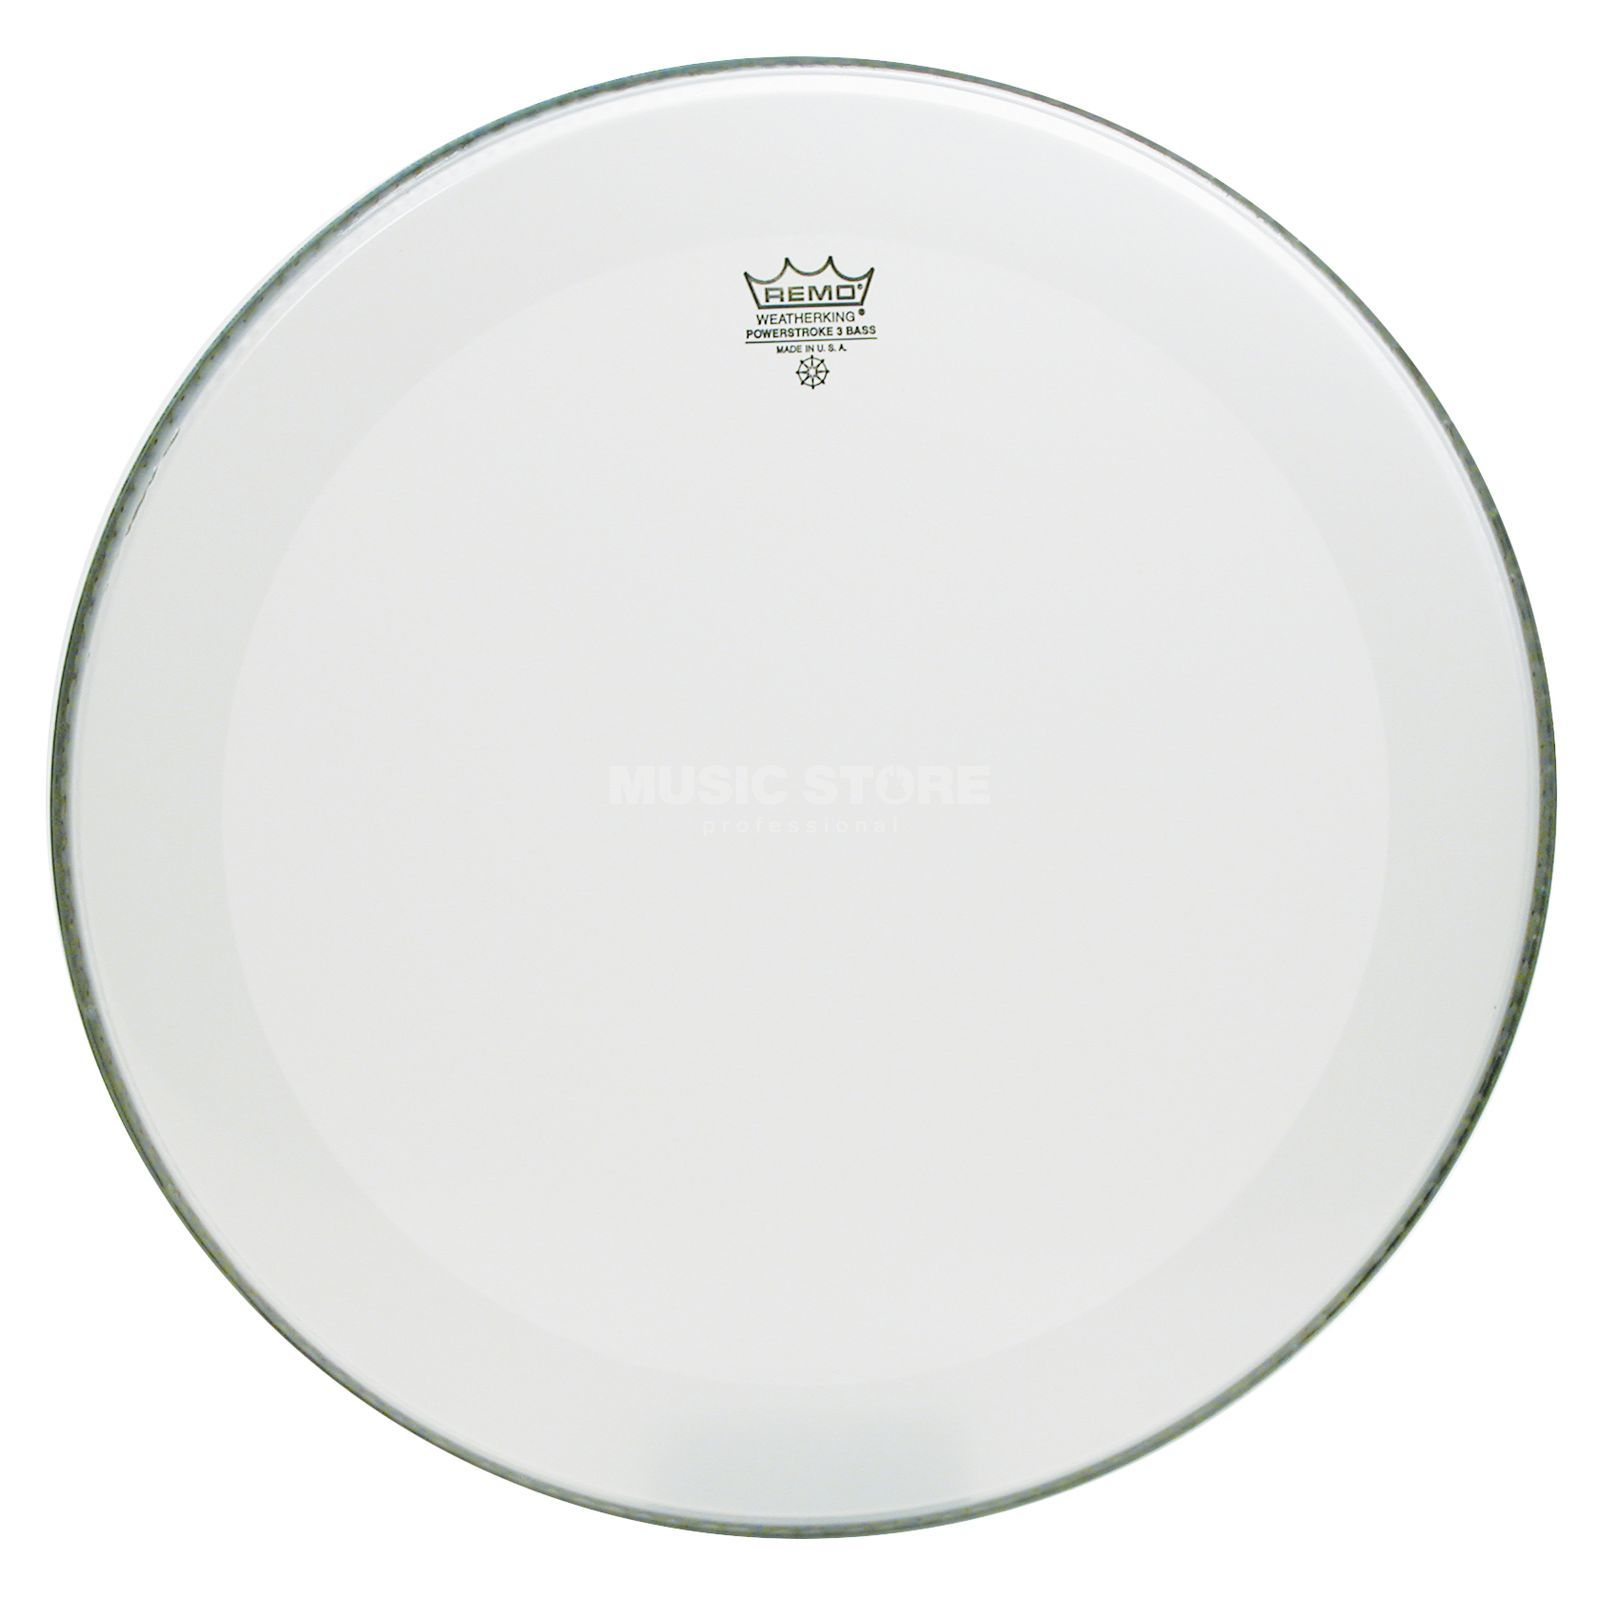 "Remo Powerstroke 3 Smooth White 24"" BassDrum Batter/Reso Product Image"